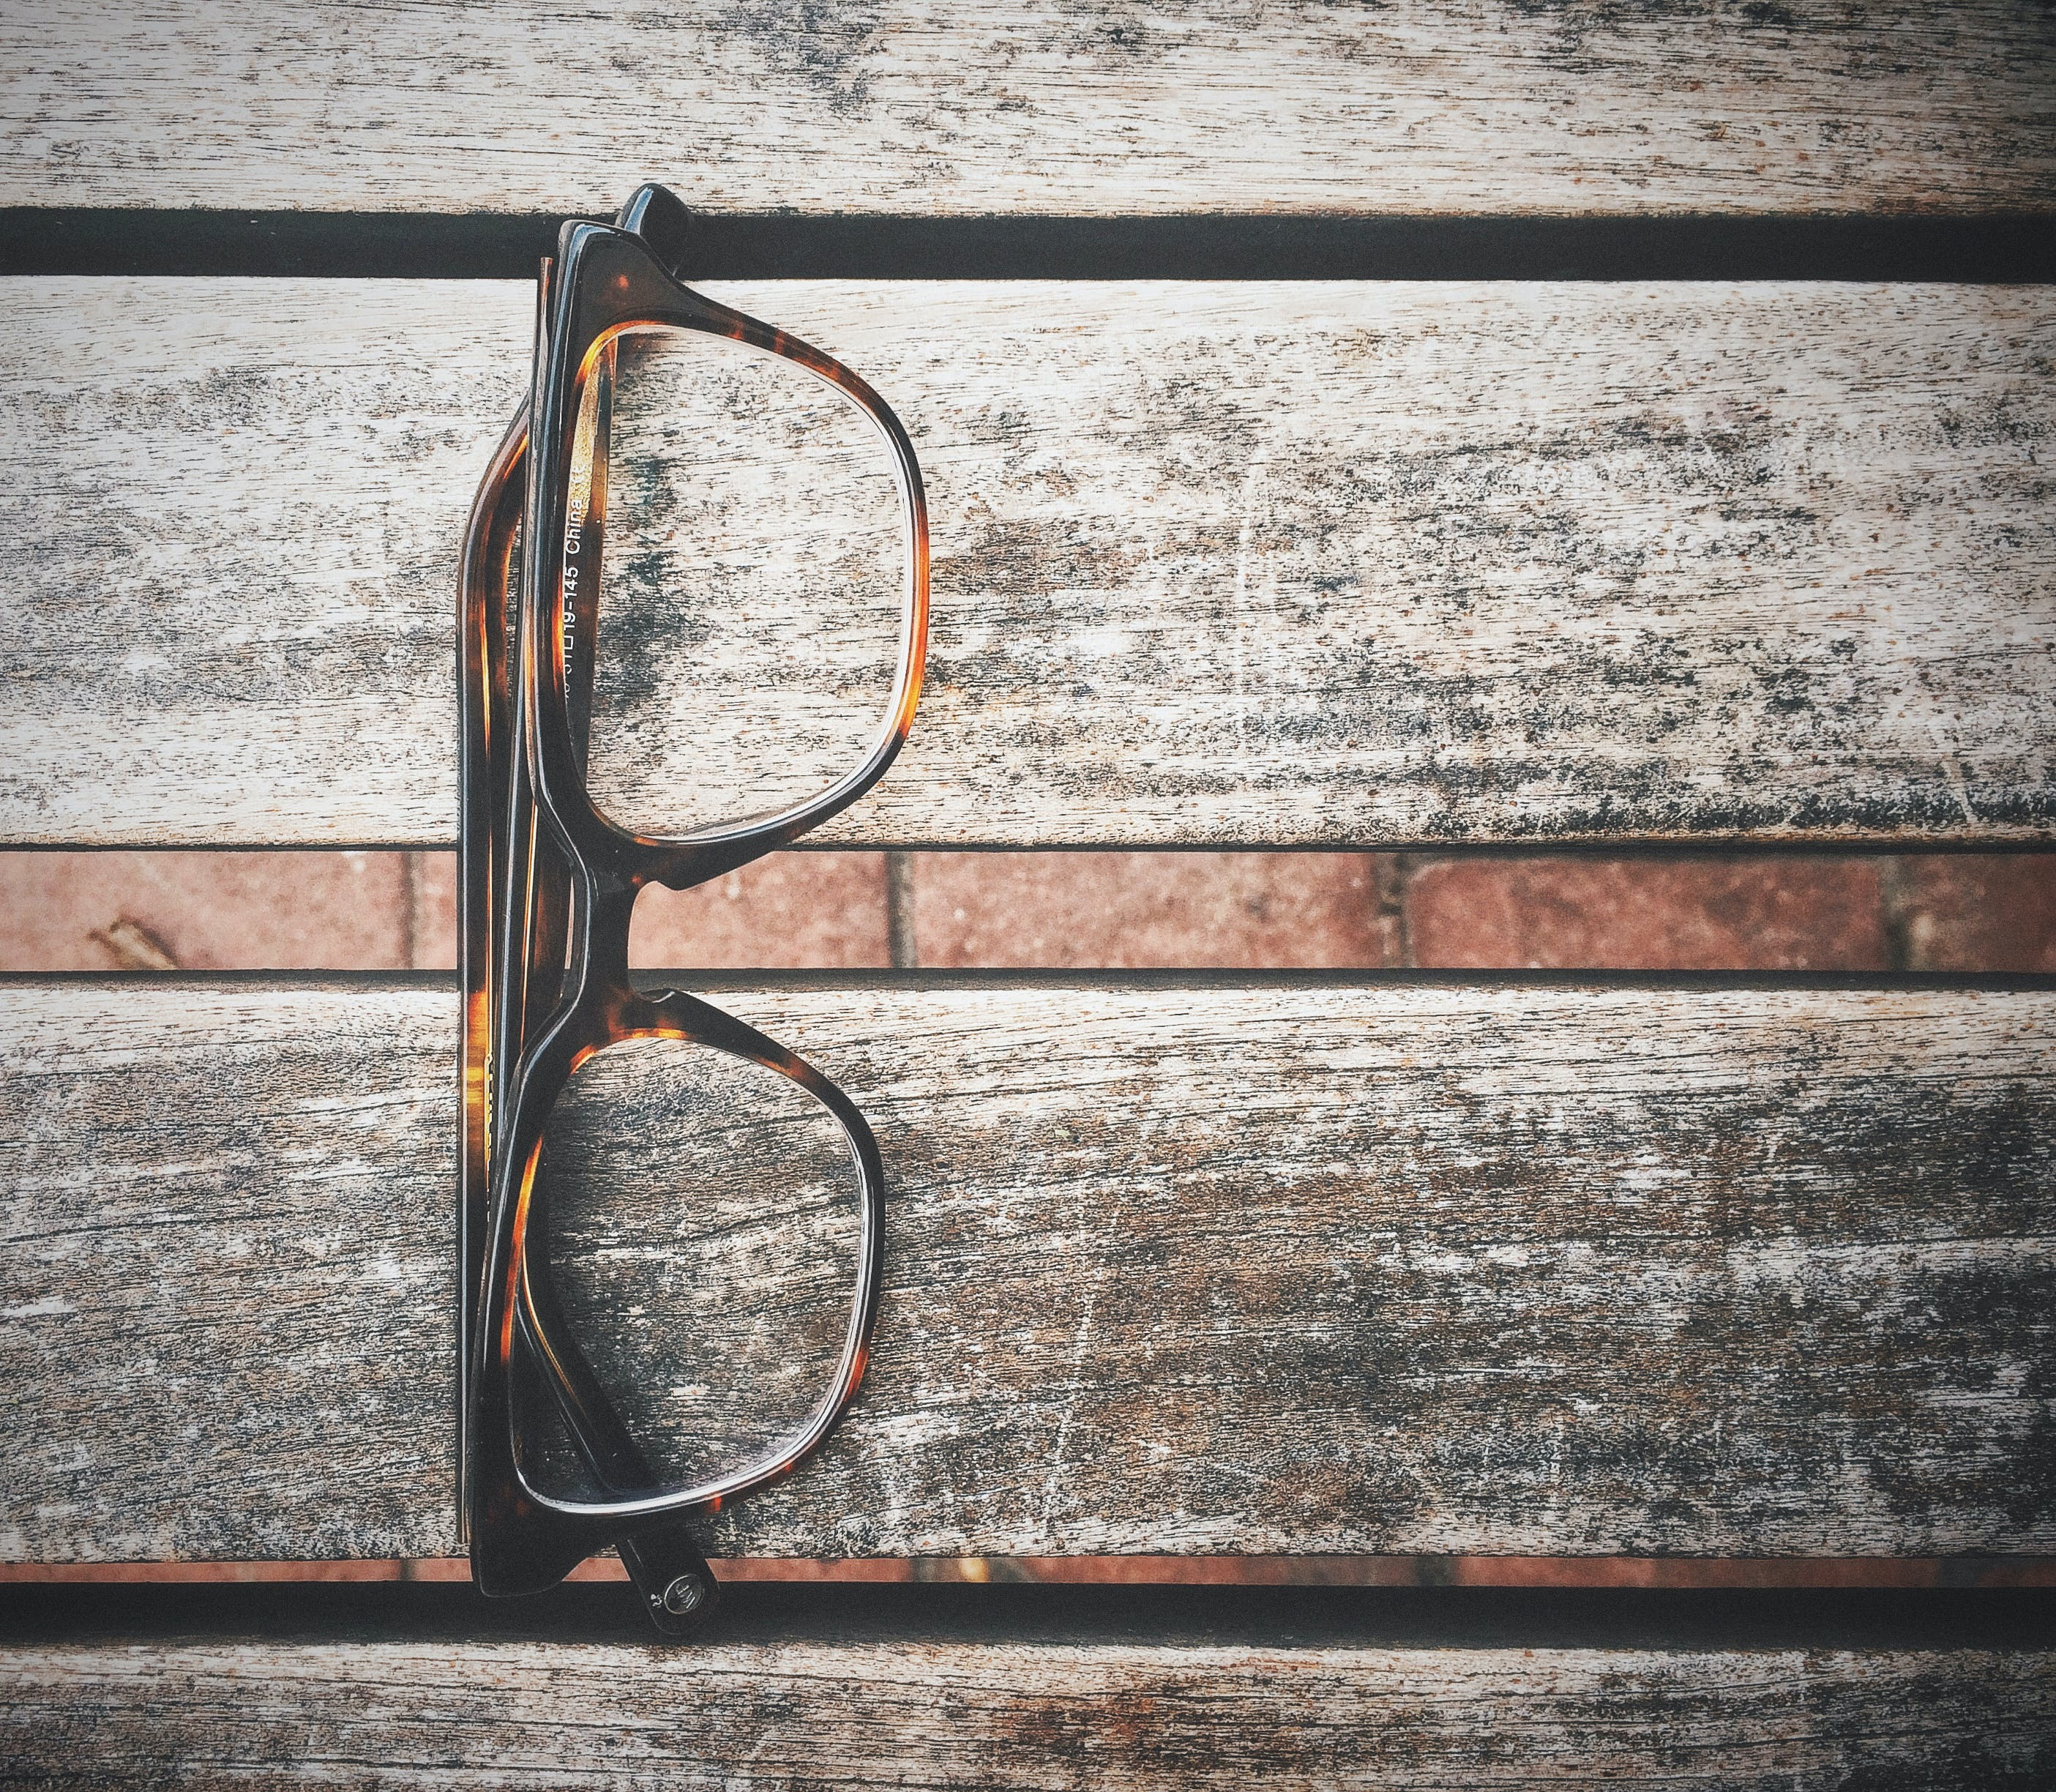 Free stock photo of glasses, object